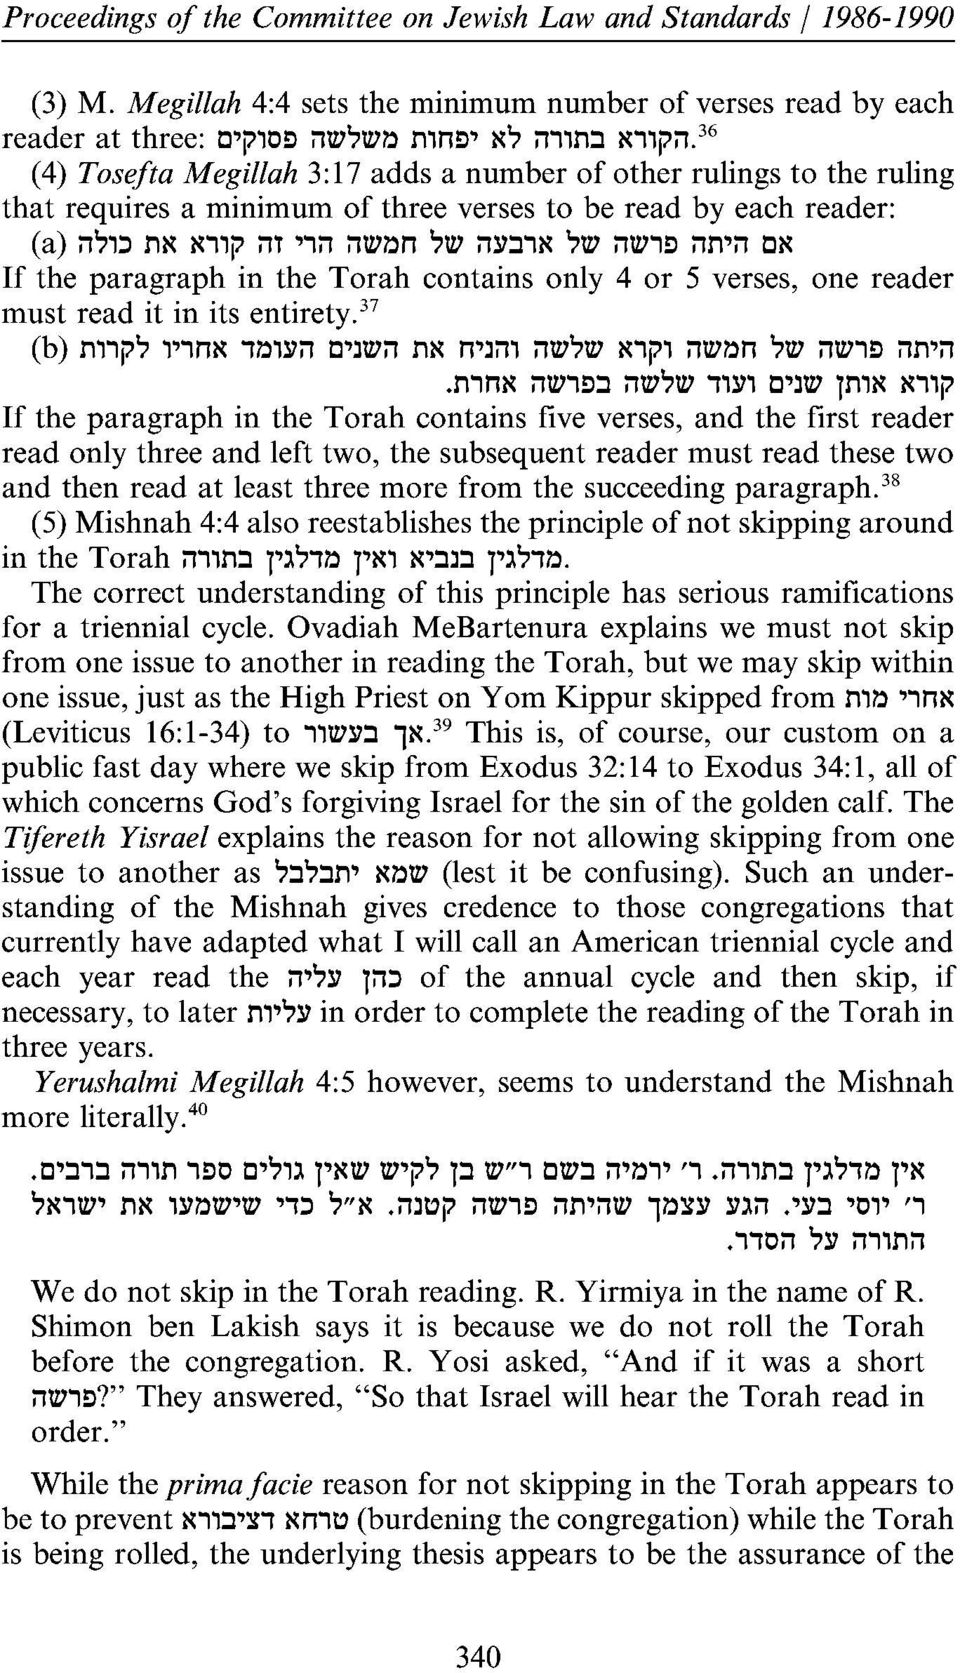 "',tl iln'il c~ If the paragraph in the Torah contains only 4 or 5 verses, one reader must read it in its entirety. 37 (b) m,p7,,,""~,~,37il C'lll.'il n~ n'lm il1v71v ~,i', illl.'~n 7w illl.',tl iln'il.mn~ illl."